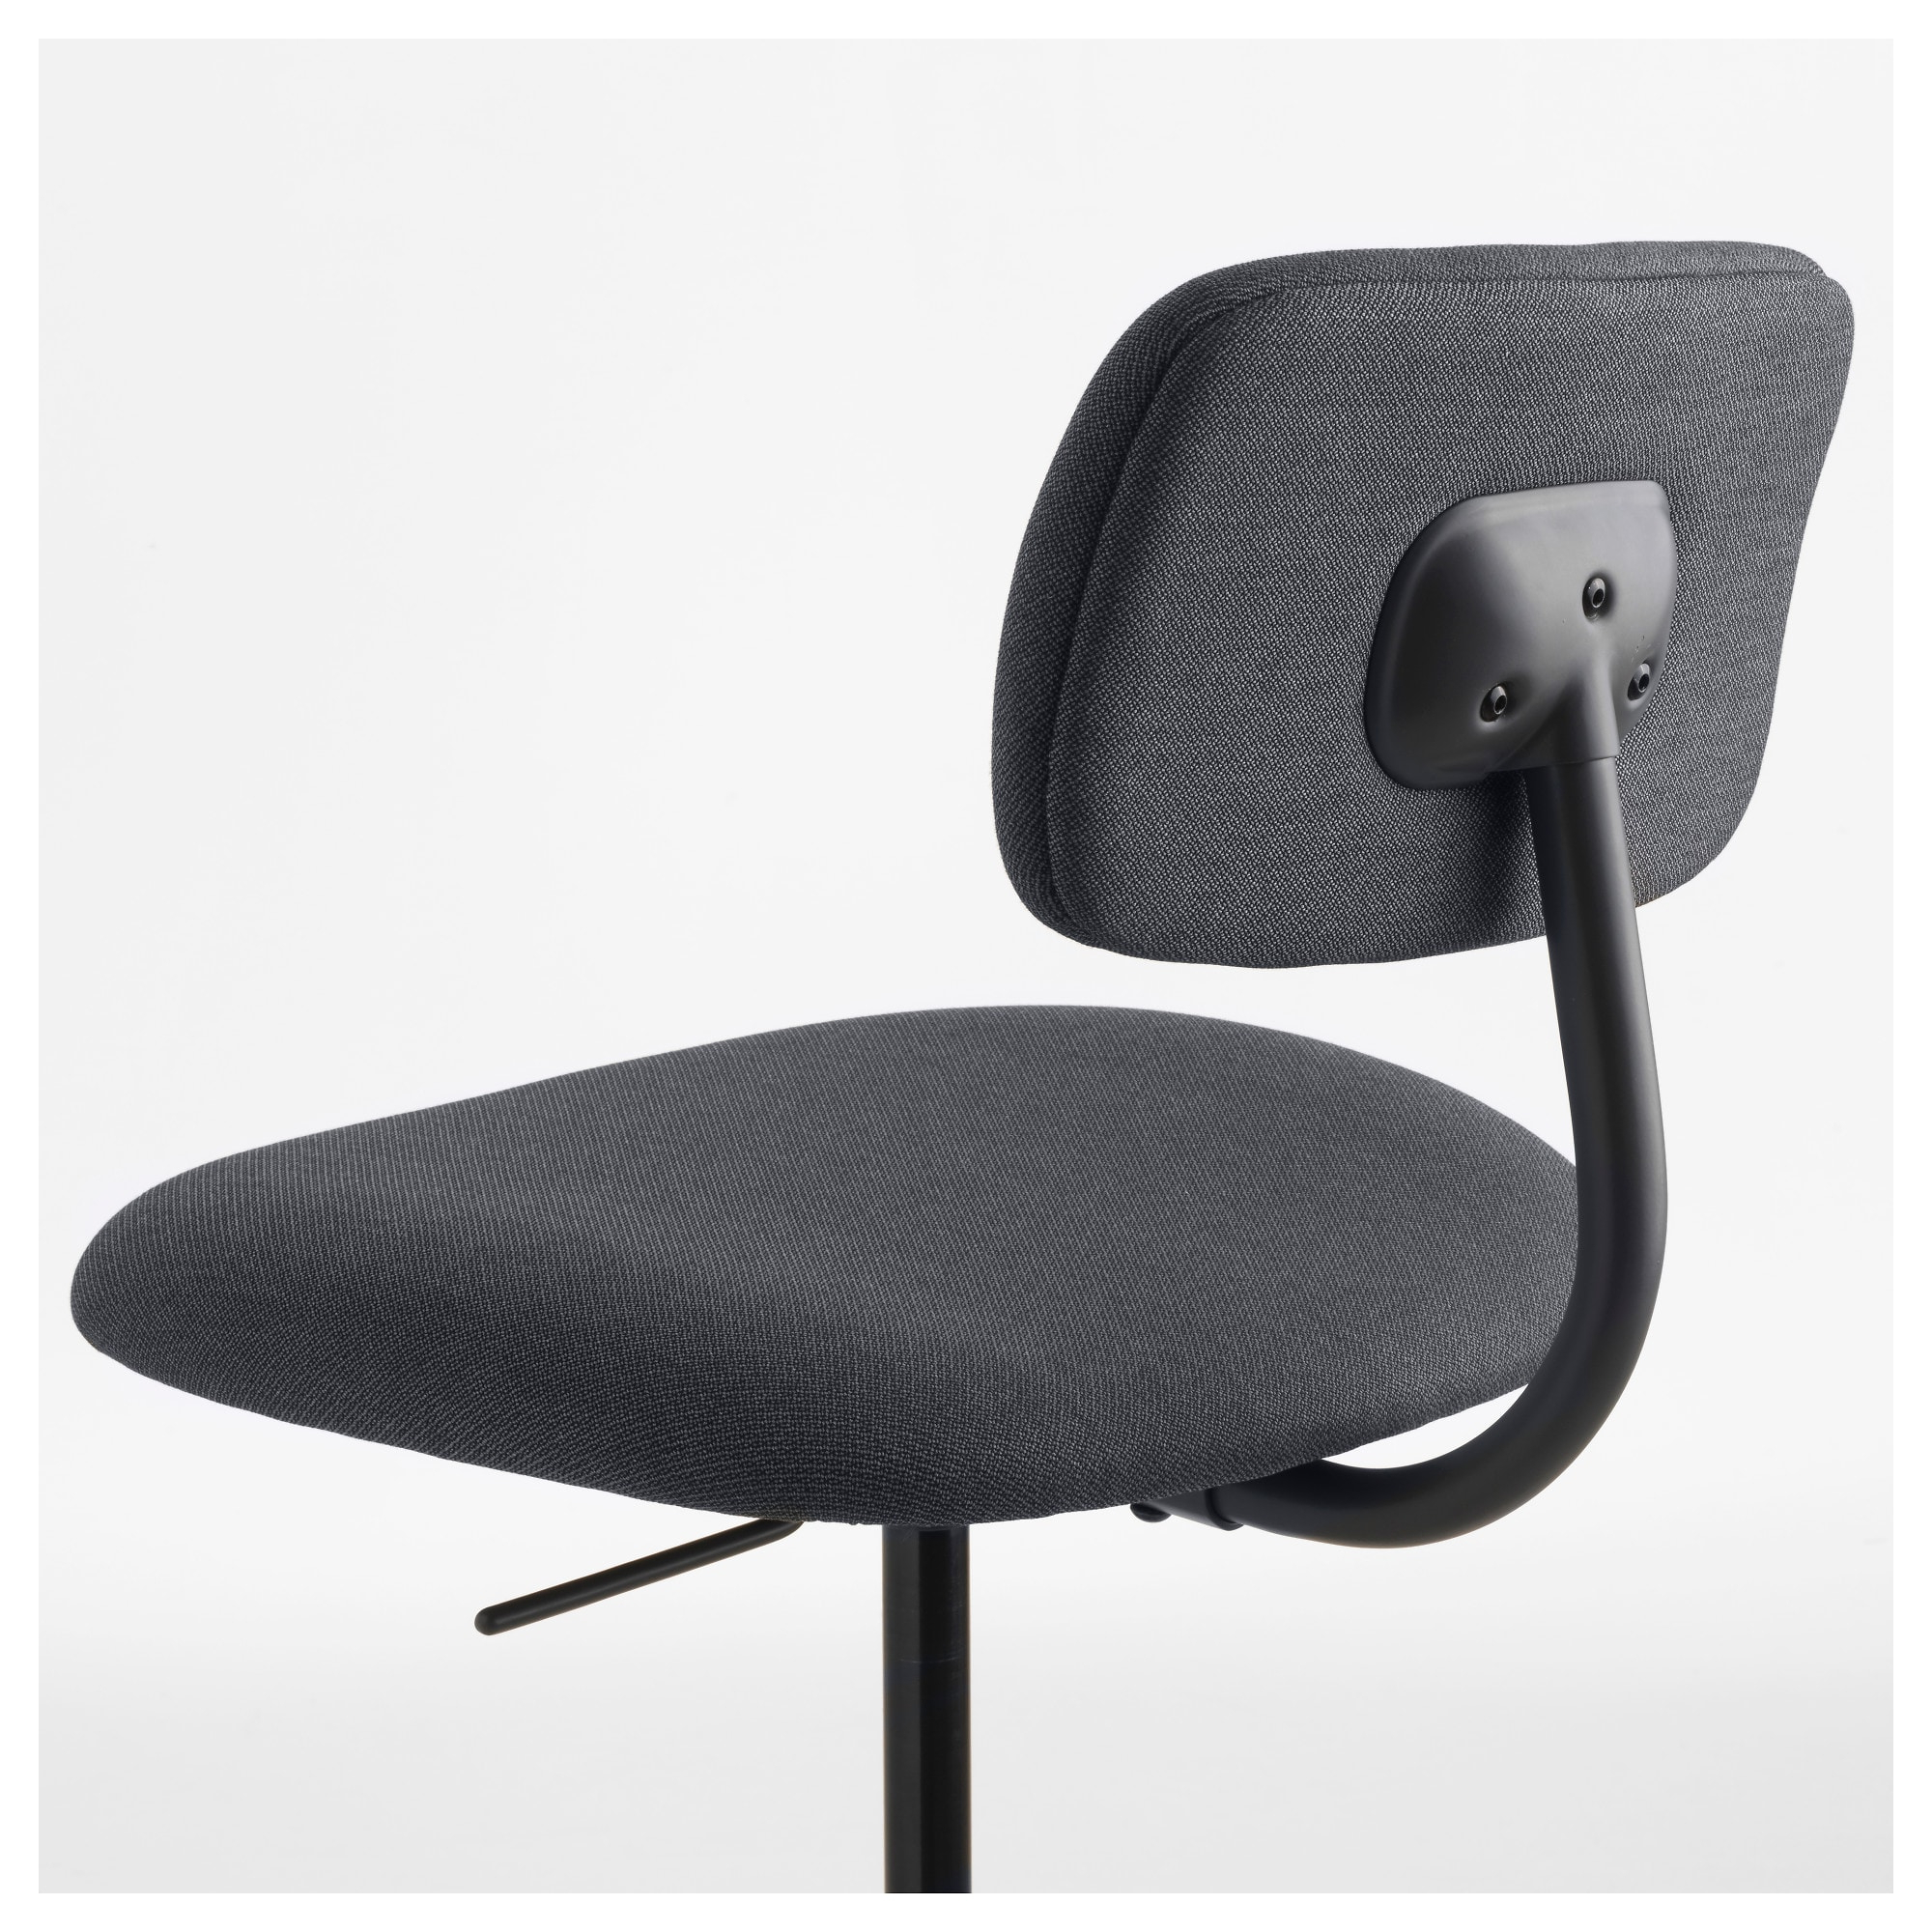 Bleckberget Swivel Chair Idekulla Dark Grey – Ikea With Regard To Fashionable Dark Grey Swivel Chairs (View 4 of 20)